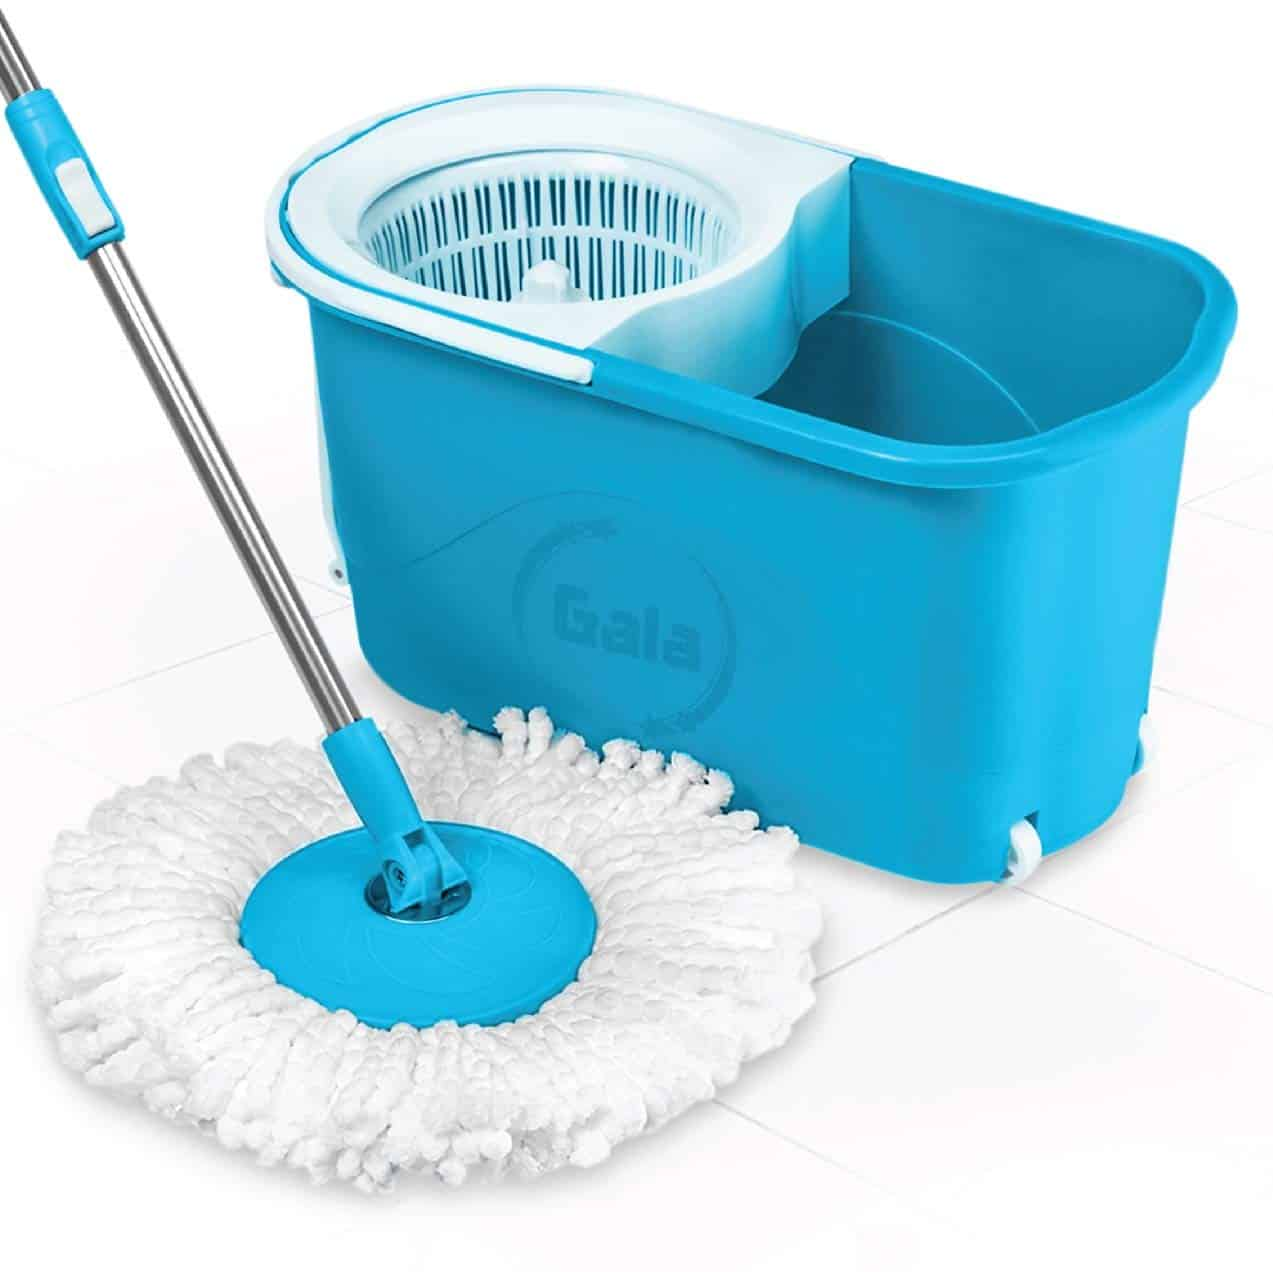 Best Gala Spin Mop in India 2020 (Very Useful Product for Home, Office) 3